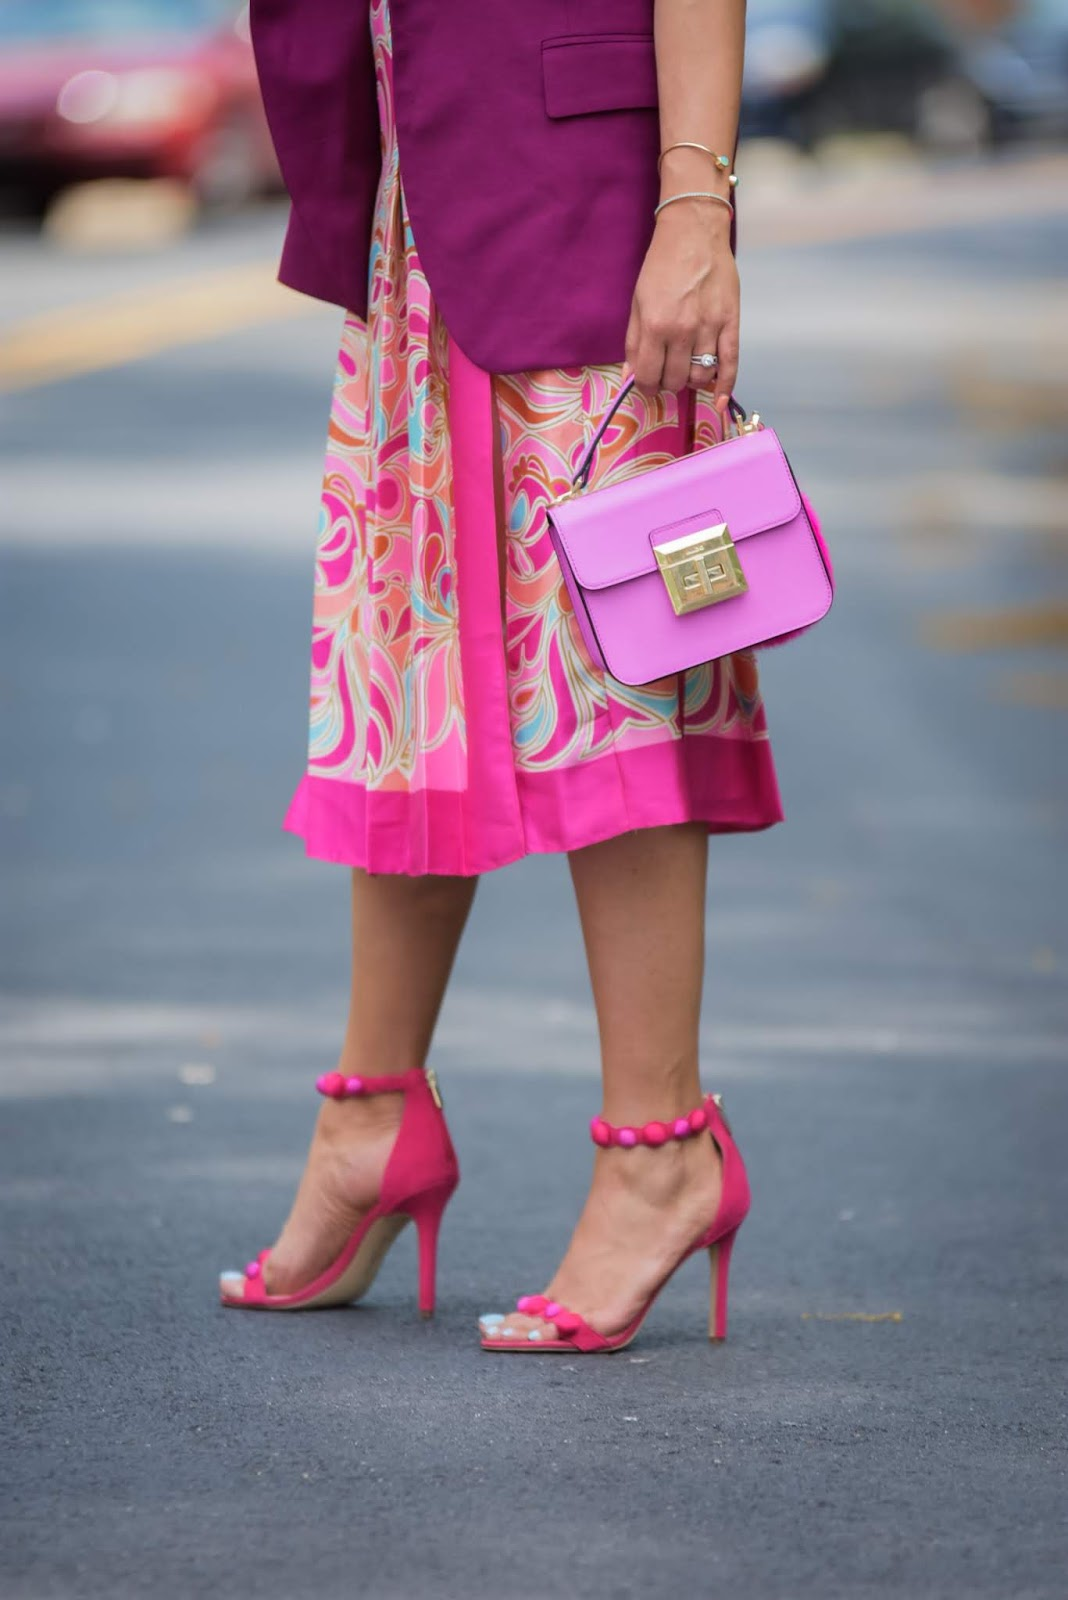 how to wear monochromatic pink, printed seperates zara outfit, pink sam edelman sandals, strappy heels, street style, pink blazer look.,office workwesr, brights, ray ban sunglasses, slit skirt, aldo pink pom pom boag, purple, myriad musings